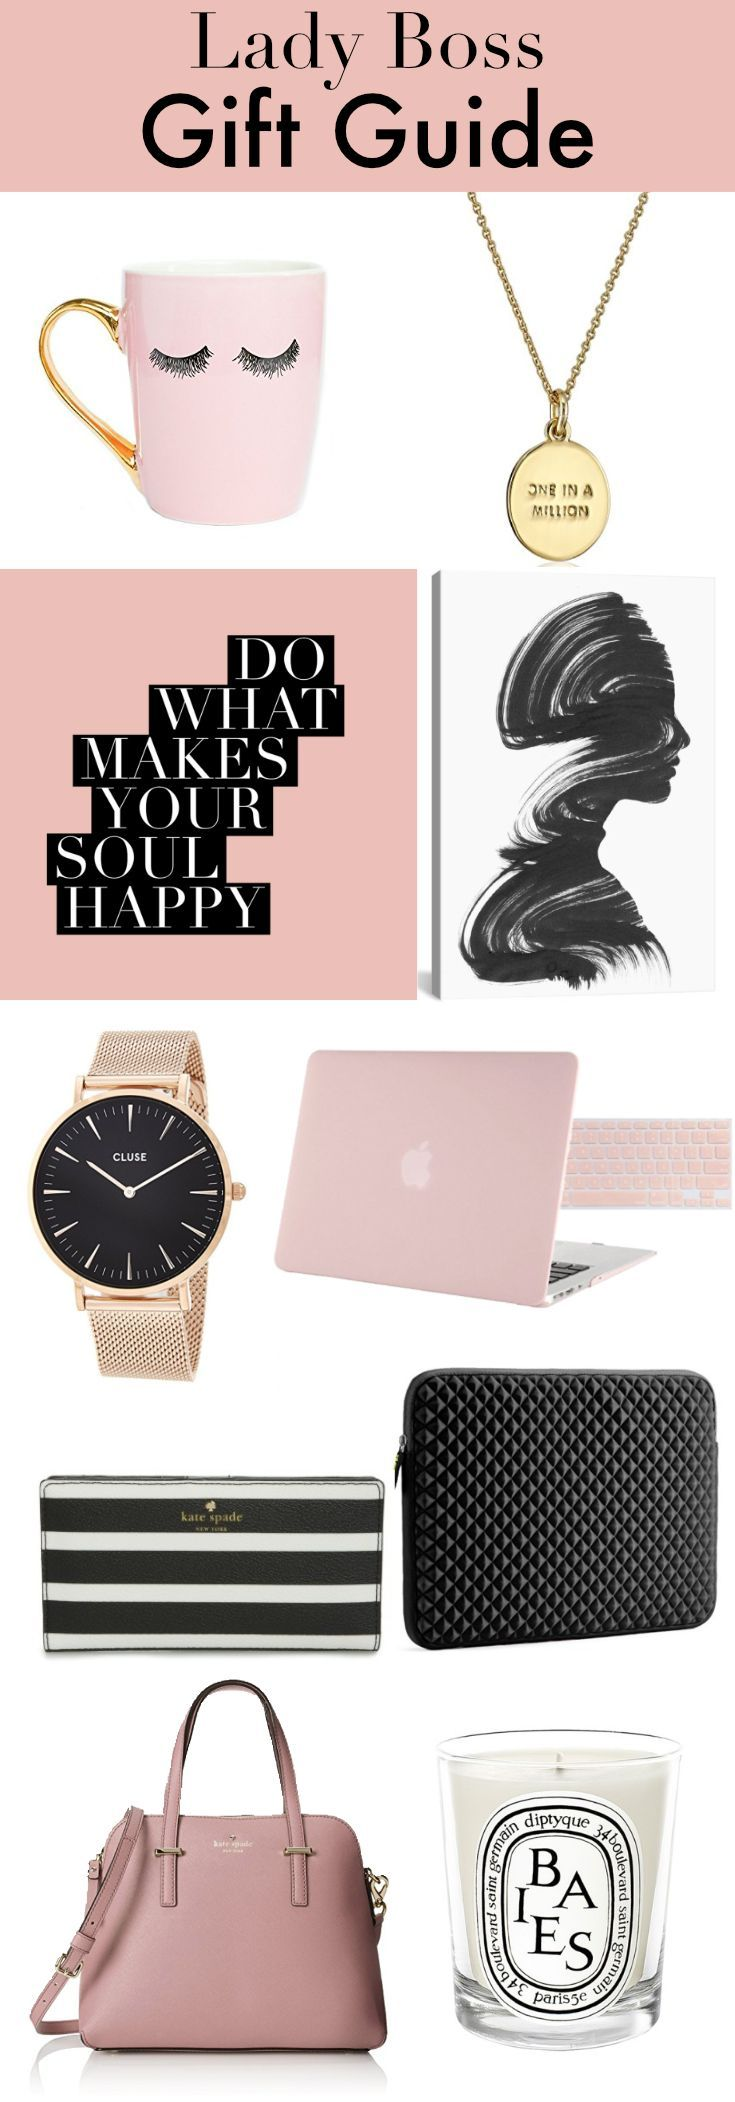 Best Lady Boss Gifts Boss Lady Gifts Gifts For Boss